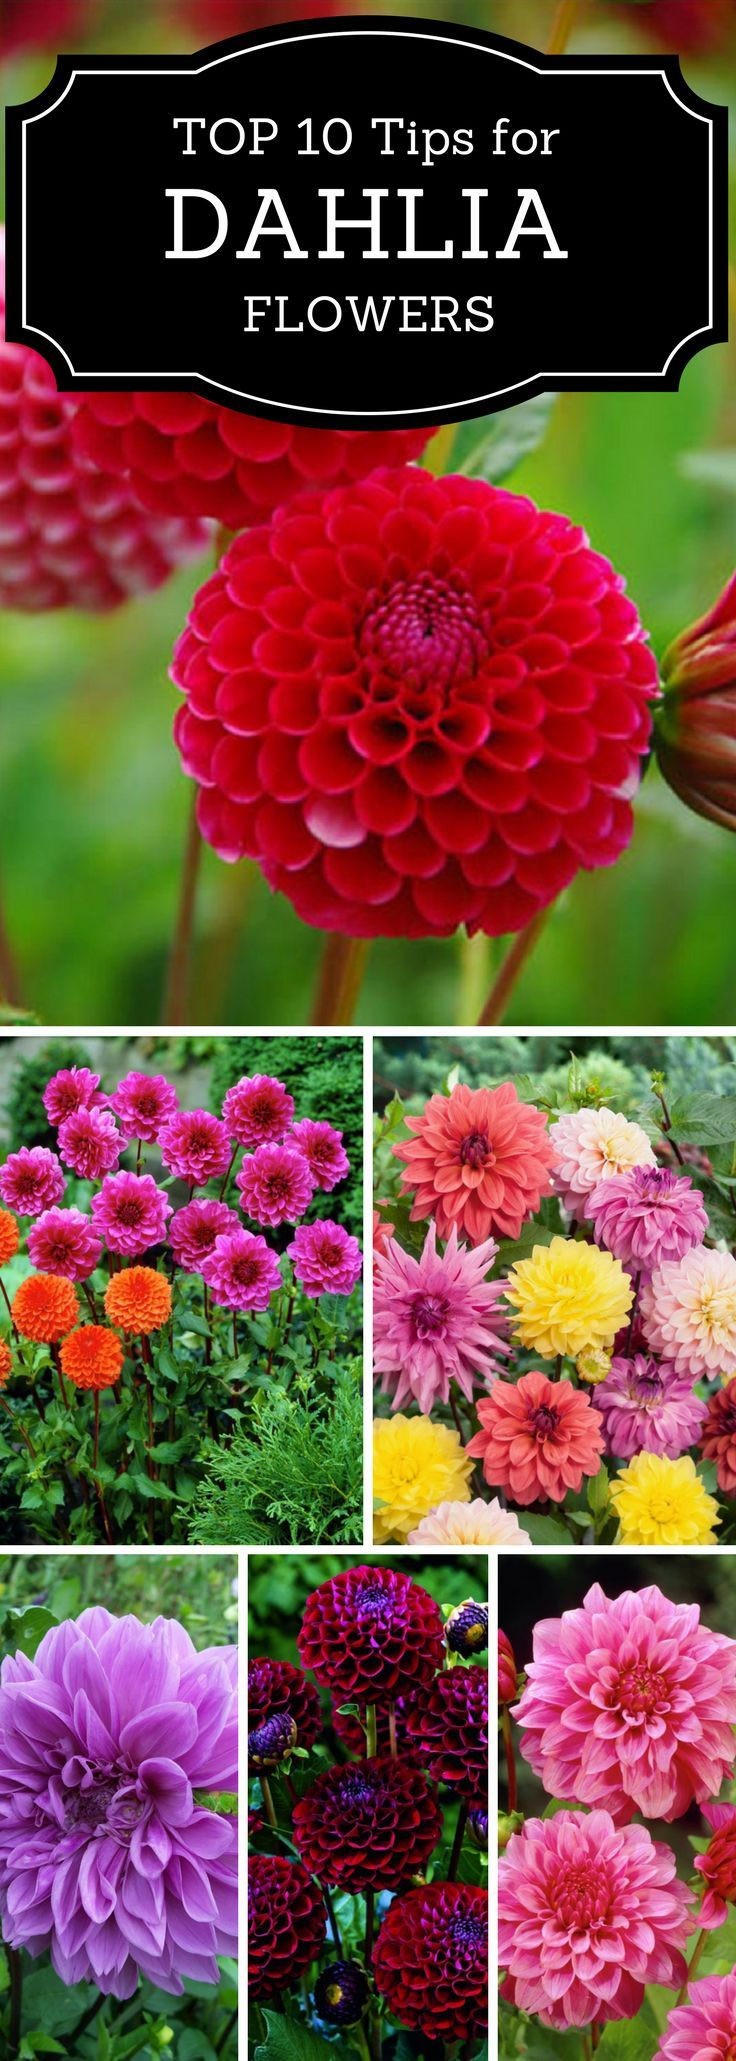 Top 10 tips on how to plant grow and care for dahlia flowers the i love dahlias this flower comes in more shapes and sizes and varieties than probably any other flower find what works in your garden and region izmirmasajfo